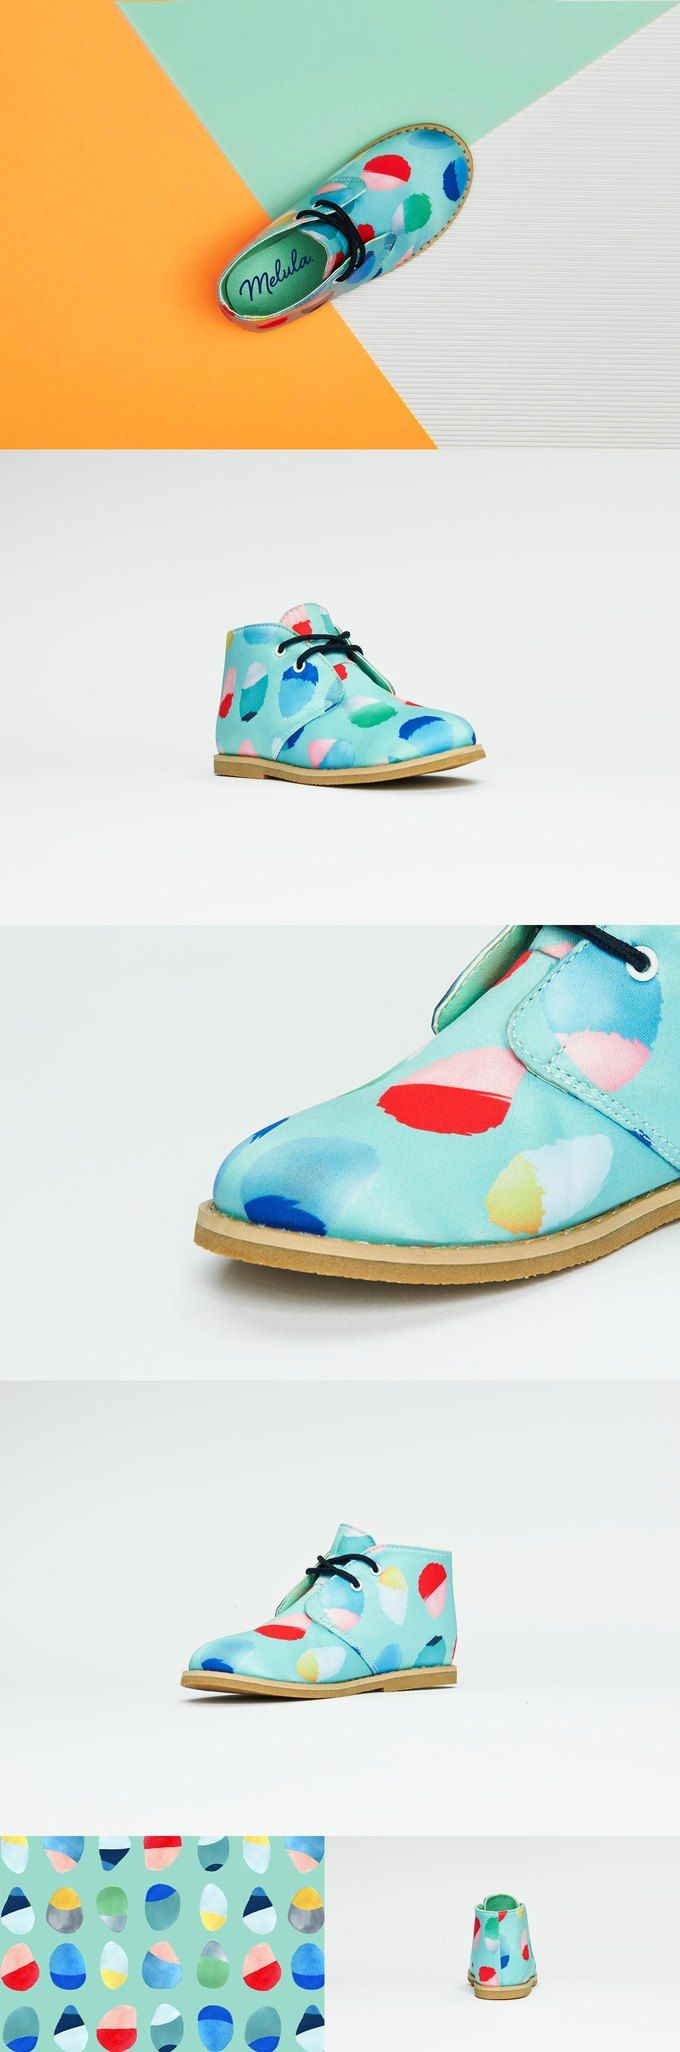 Finding good kids shoes isn't easy. But today I bring you a really good option, a combination of quality, functionality and playful look. Melula is a new children's shoes brand focused on colourful design, exquisite quality and a comfortable fitting for children. This Copenhagen-based brand has designed some gender neutral shoes with a childlike look. Louise […]